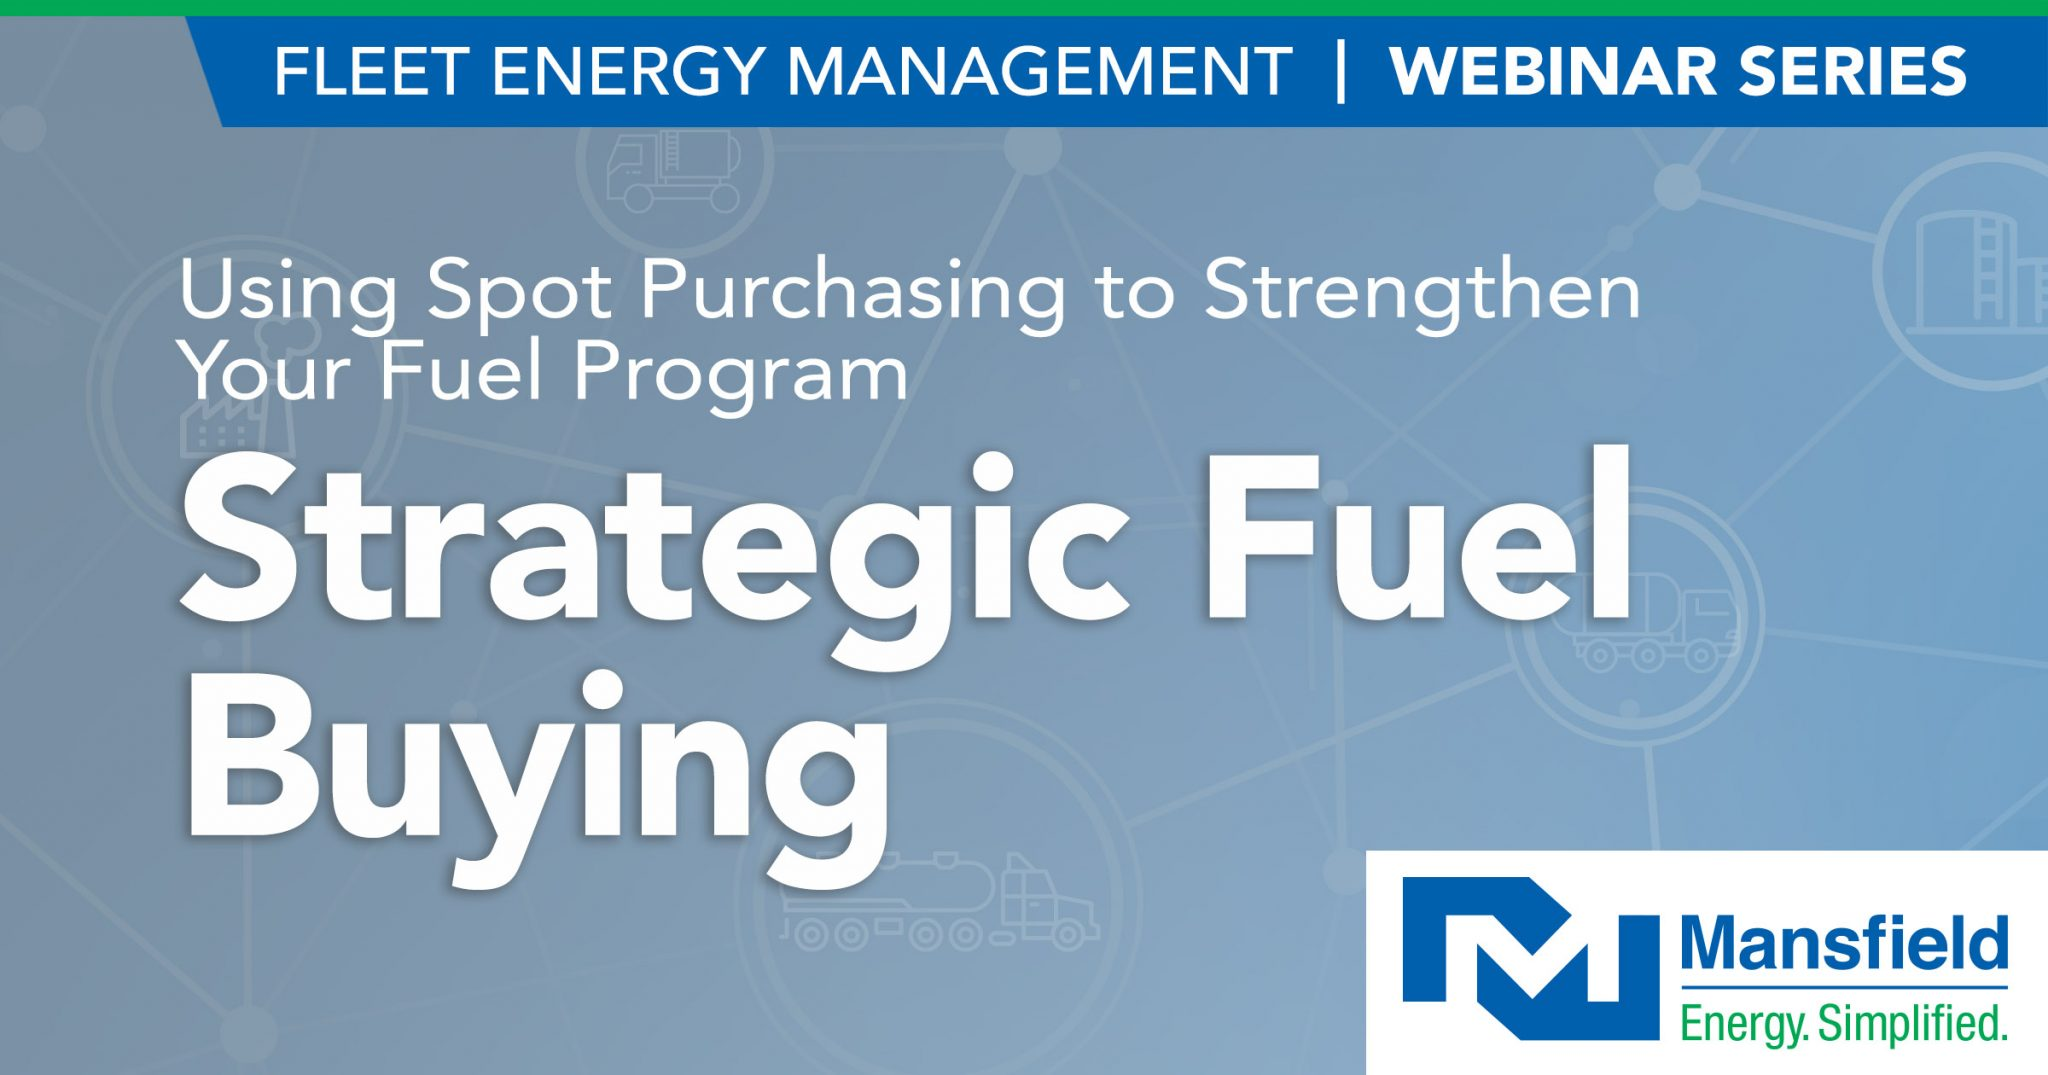 Strategic Fuel Buying